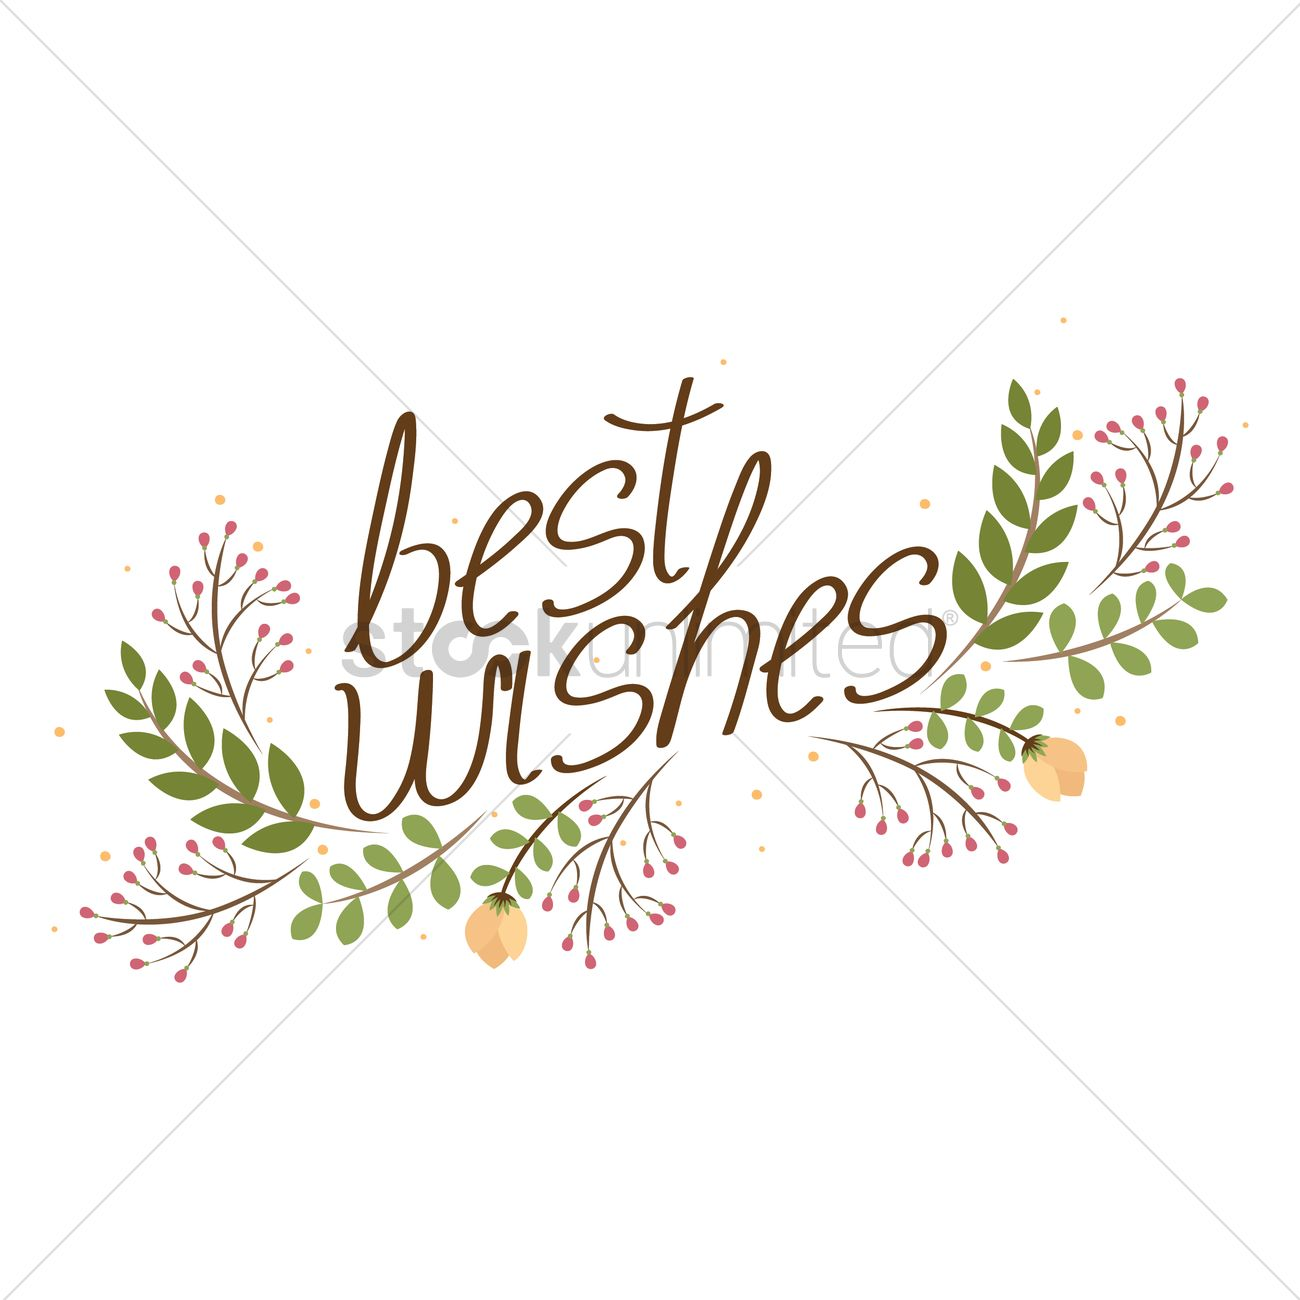 Best wishes Vector Image - 1603643 | StockUnlimited